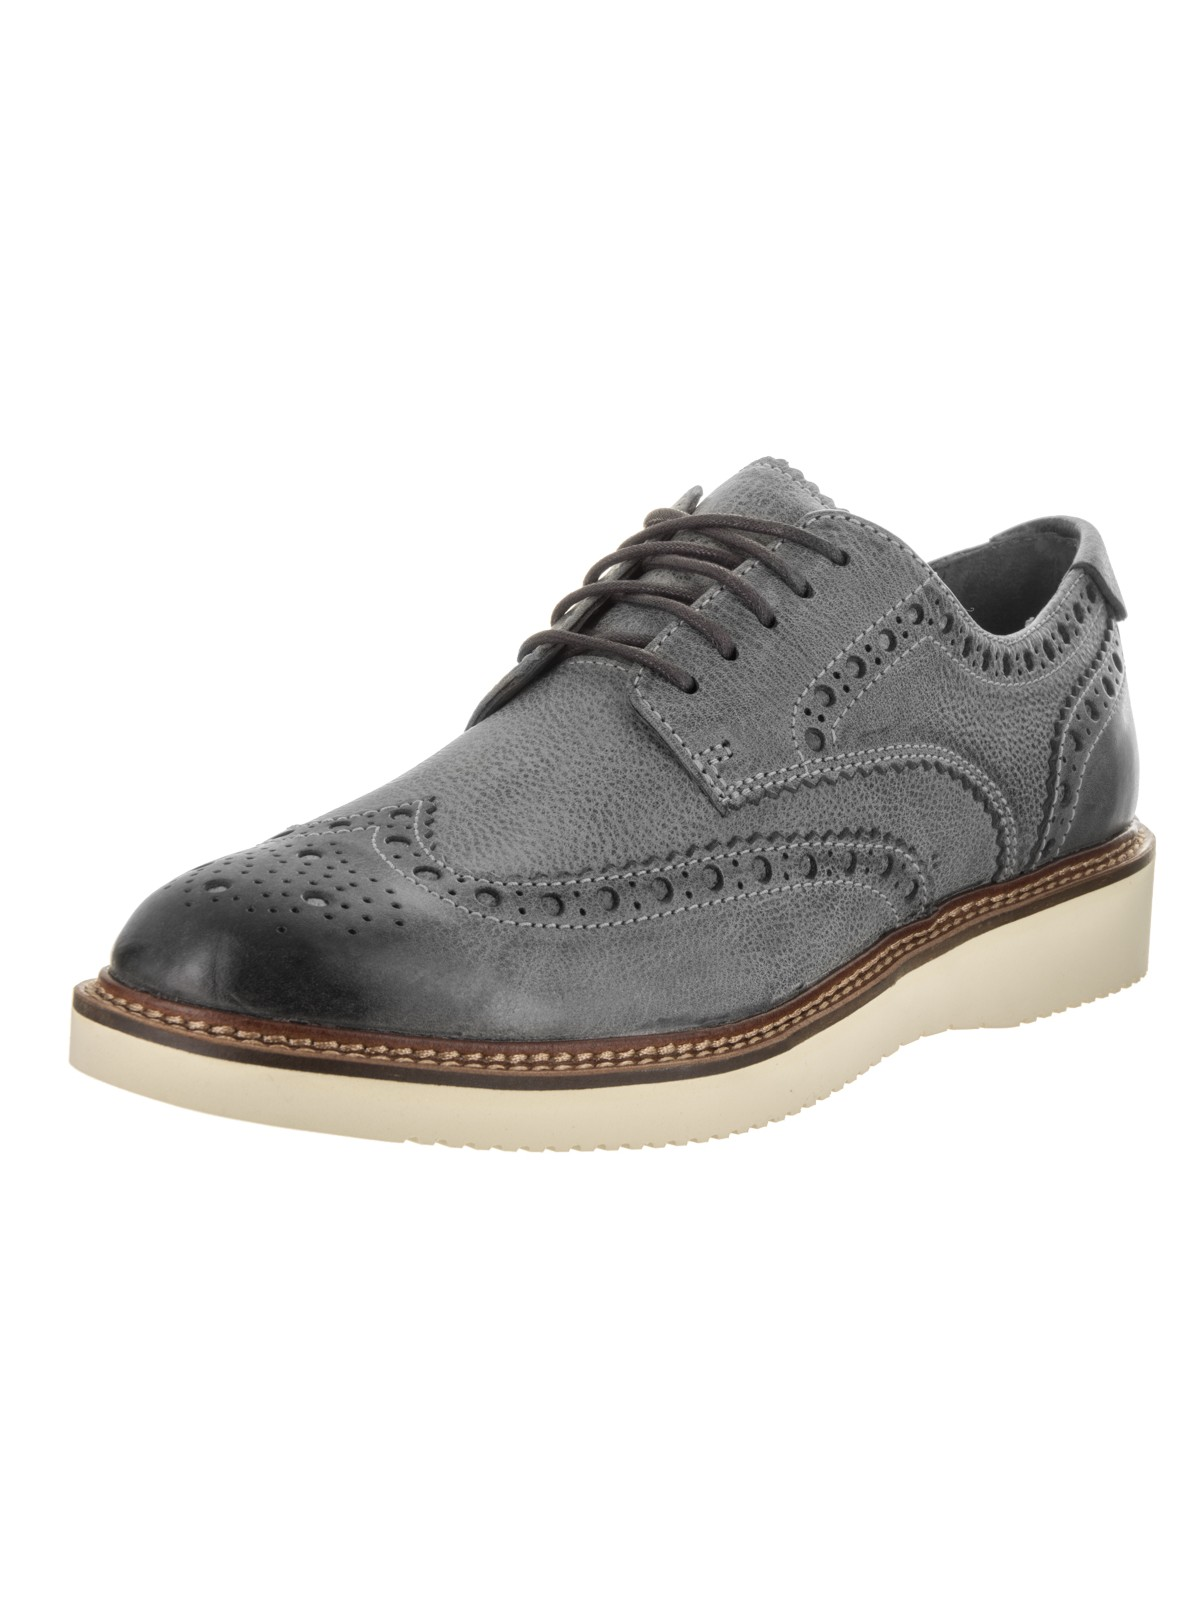 Sperry Top-Sider Men's Gold Wingtip Wedge Oxford Shoe